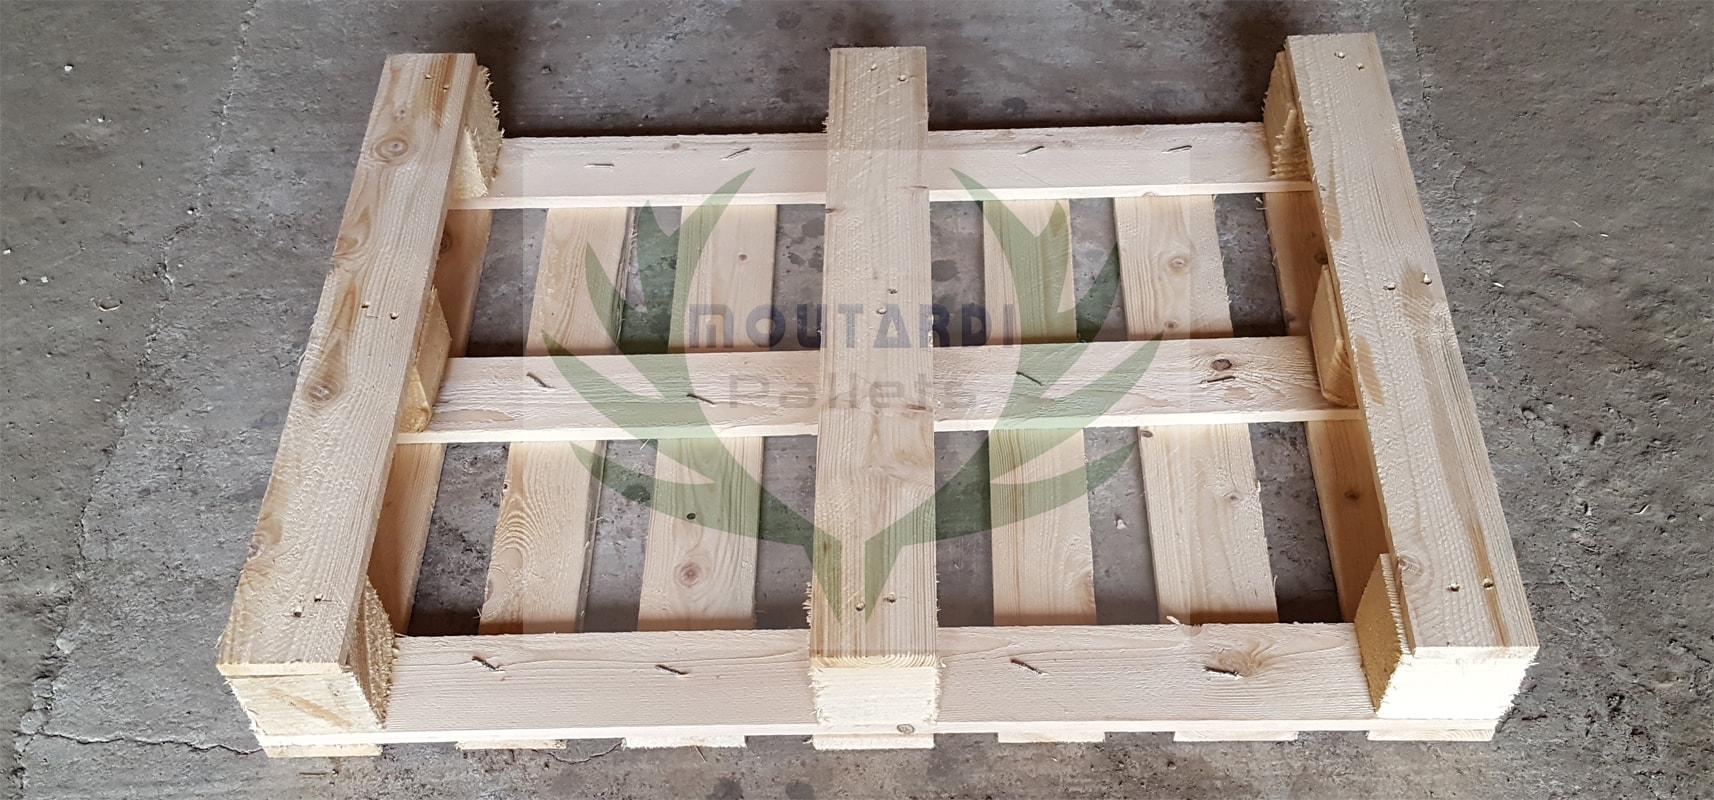 800x600 mm. pallet from spurce